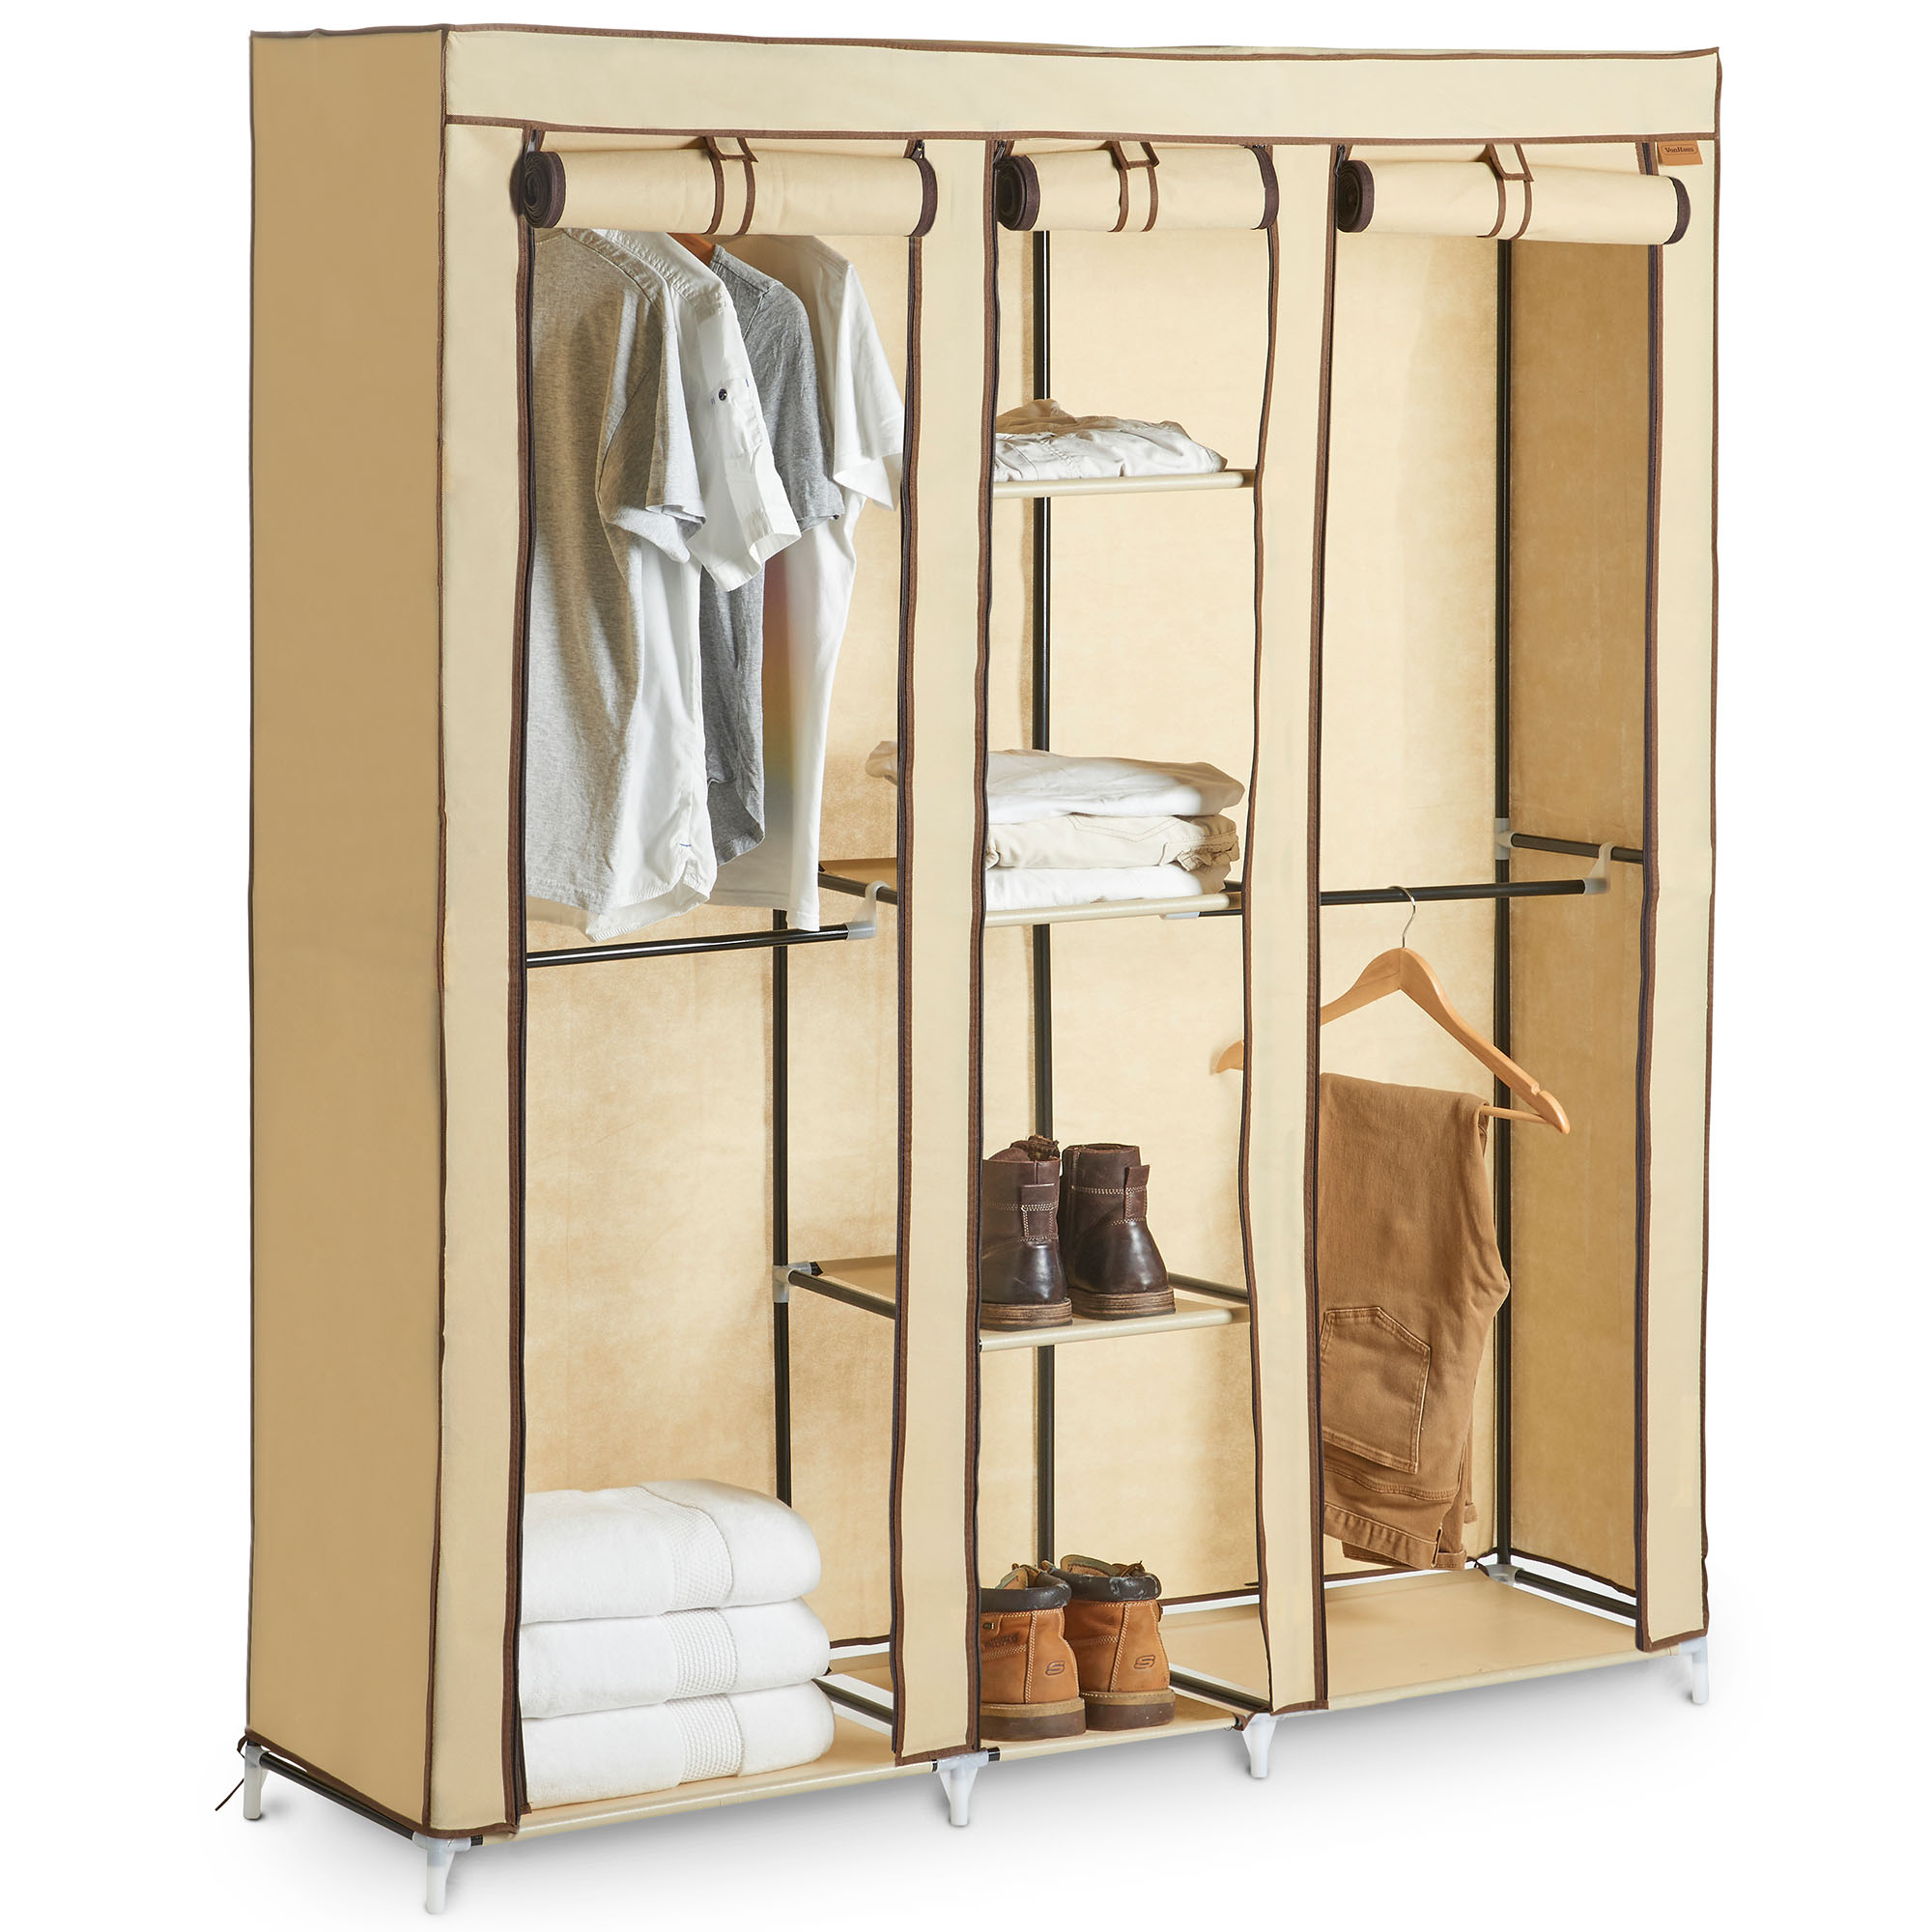 Sentinel Vonhaus Extra Large Triple Canvas Wardrobe Clothes Storage With Hanging Rail Shelves